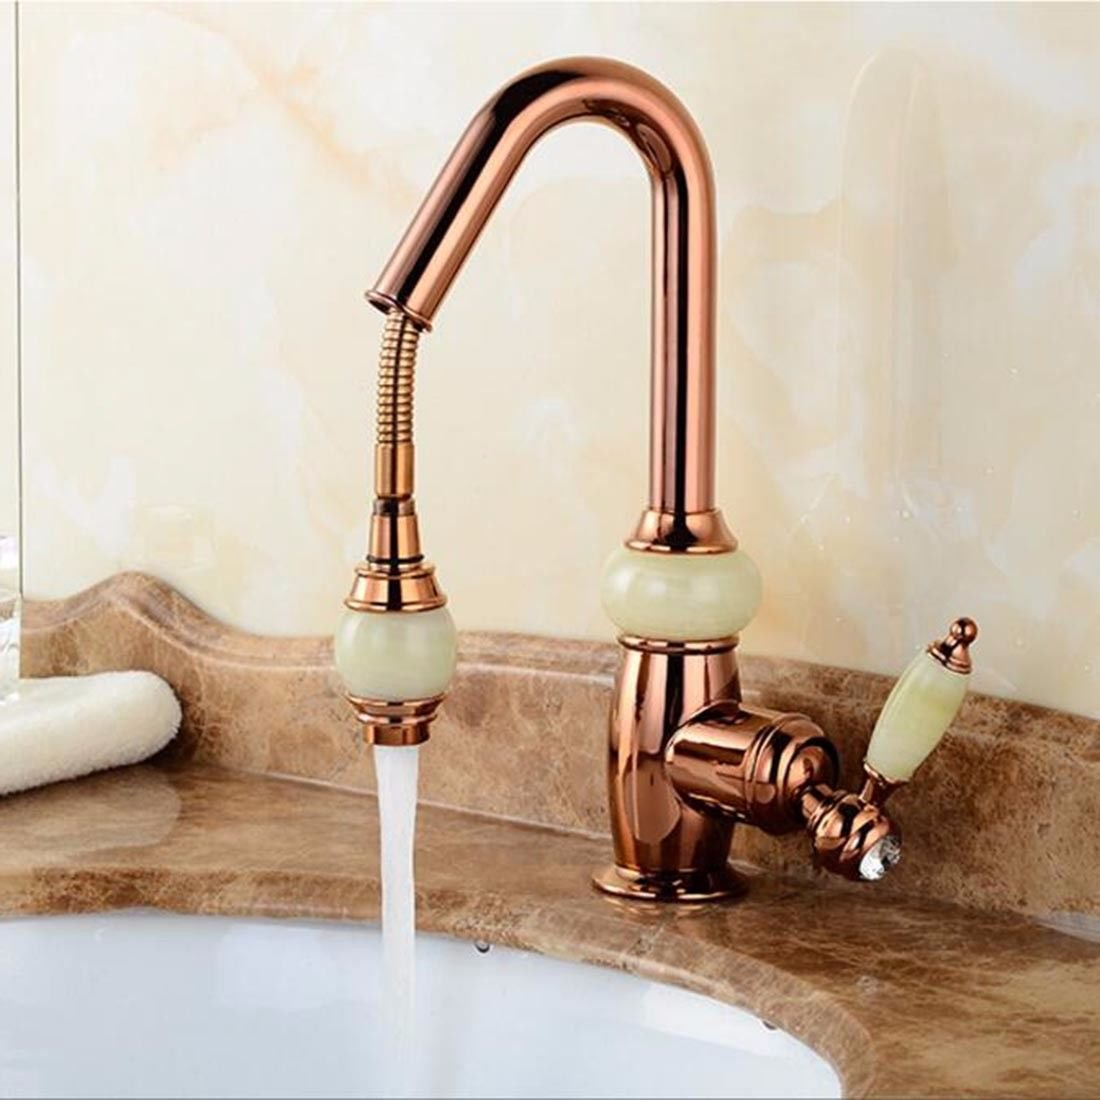 C Lpophy Bathroom Sink Mixer Taps Faucet Bath Waterfall Cold and Hot Water Tap for Washroom Bathroom and Kitchen Pull-Type Hot and Cold gold Can Be redated D